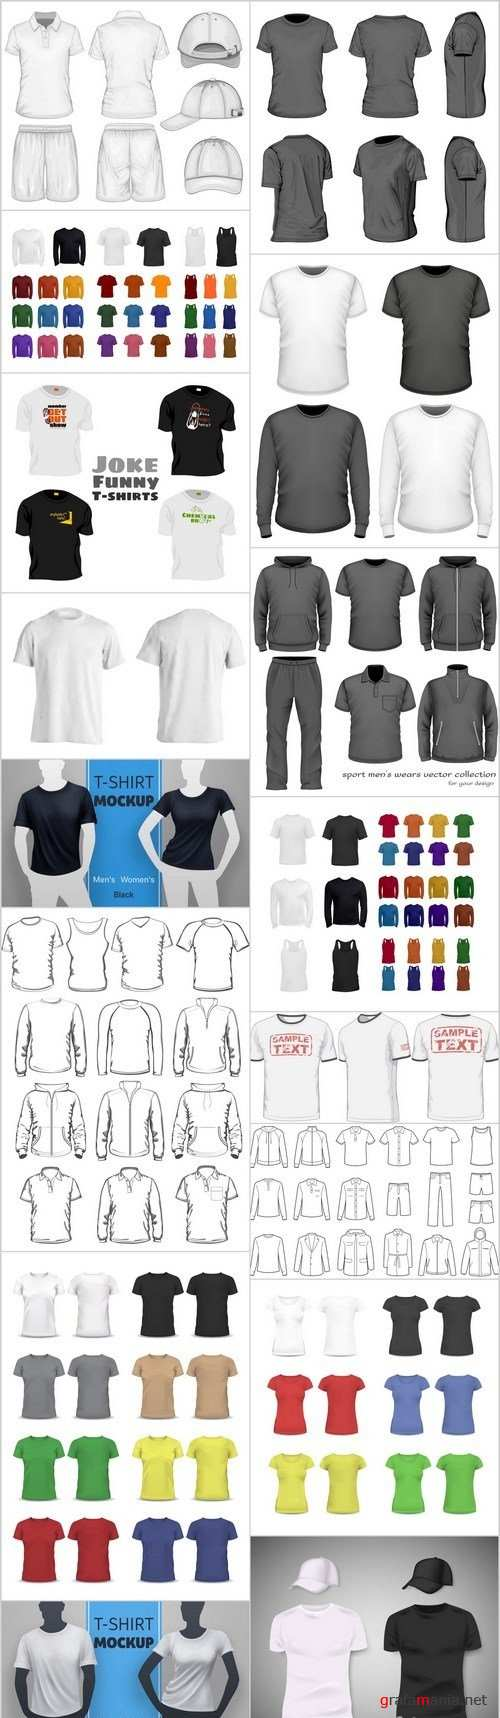 T-Shirts & Clothes Design - 16xEPS Vector Stock